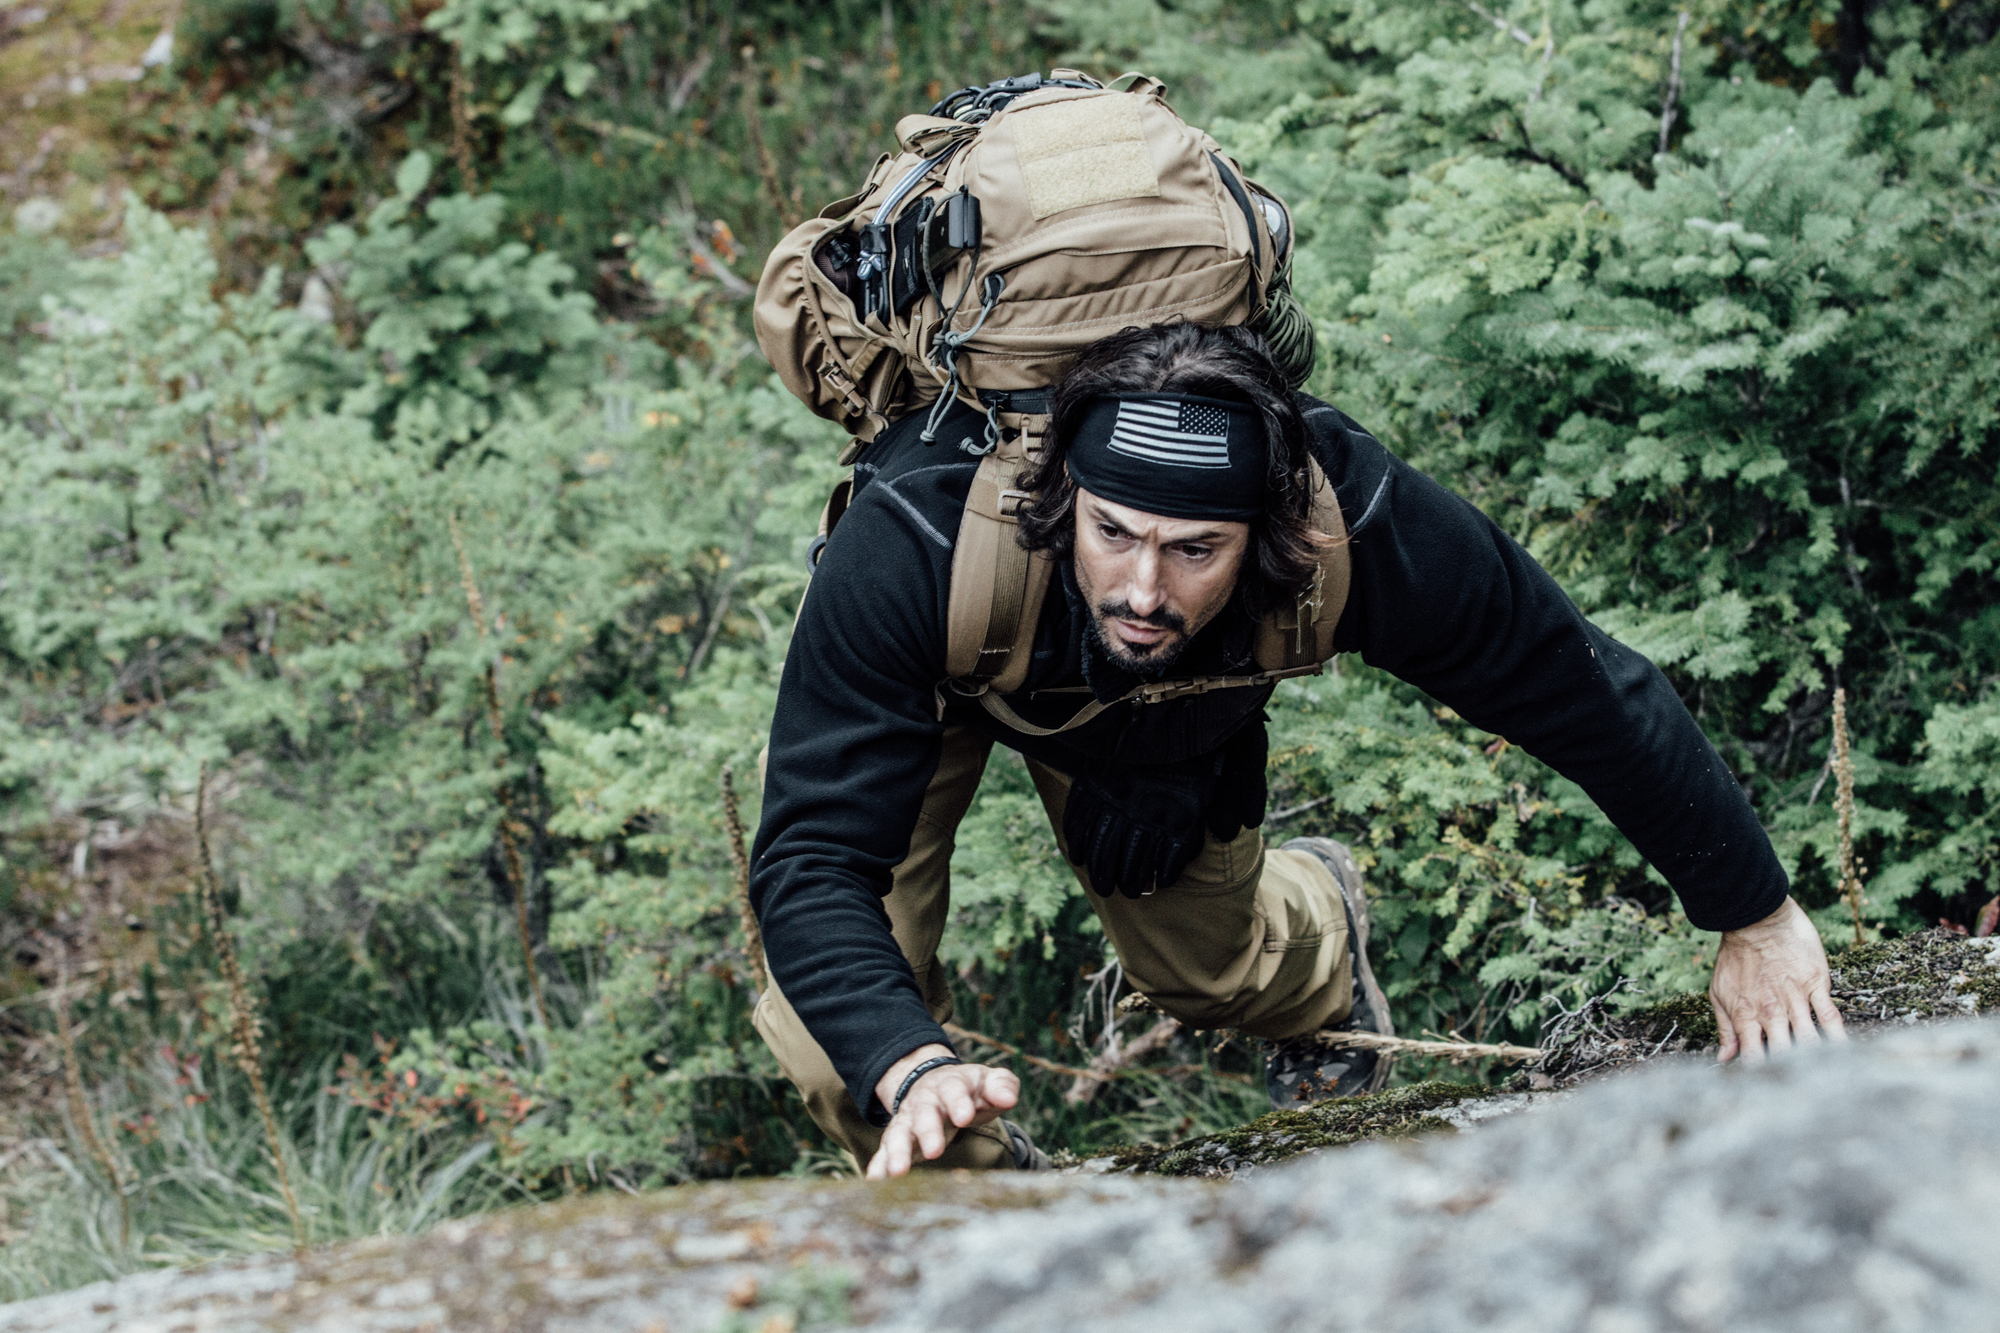 When it comes to mission specific adventure gear, there is Beyond Clothing or nothing at all. From the Tier One Operators to weekend warriors, Beyond Clothing looks good and sends the message;you're ready for anything. Folks, if you want Beyond Clothing for Xmas, use the code RUDYREYES and get 15% off your order!